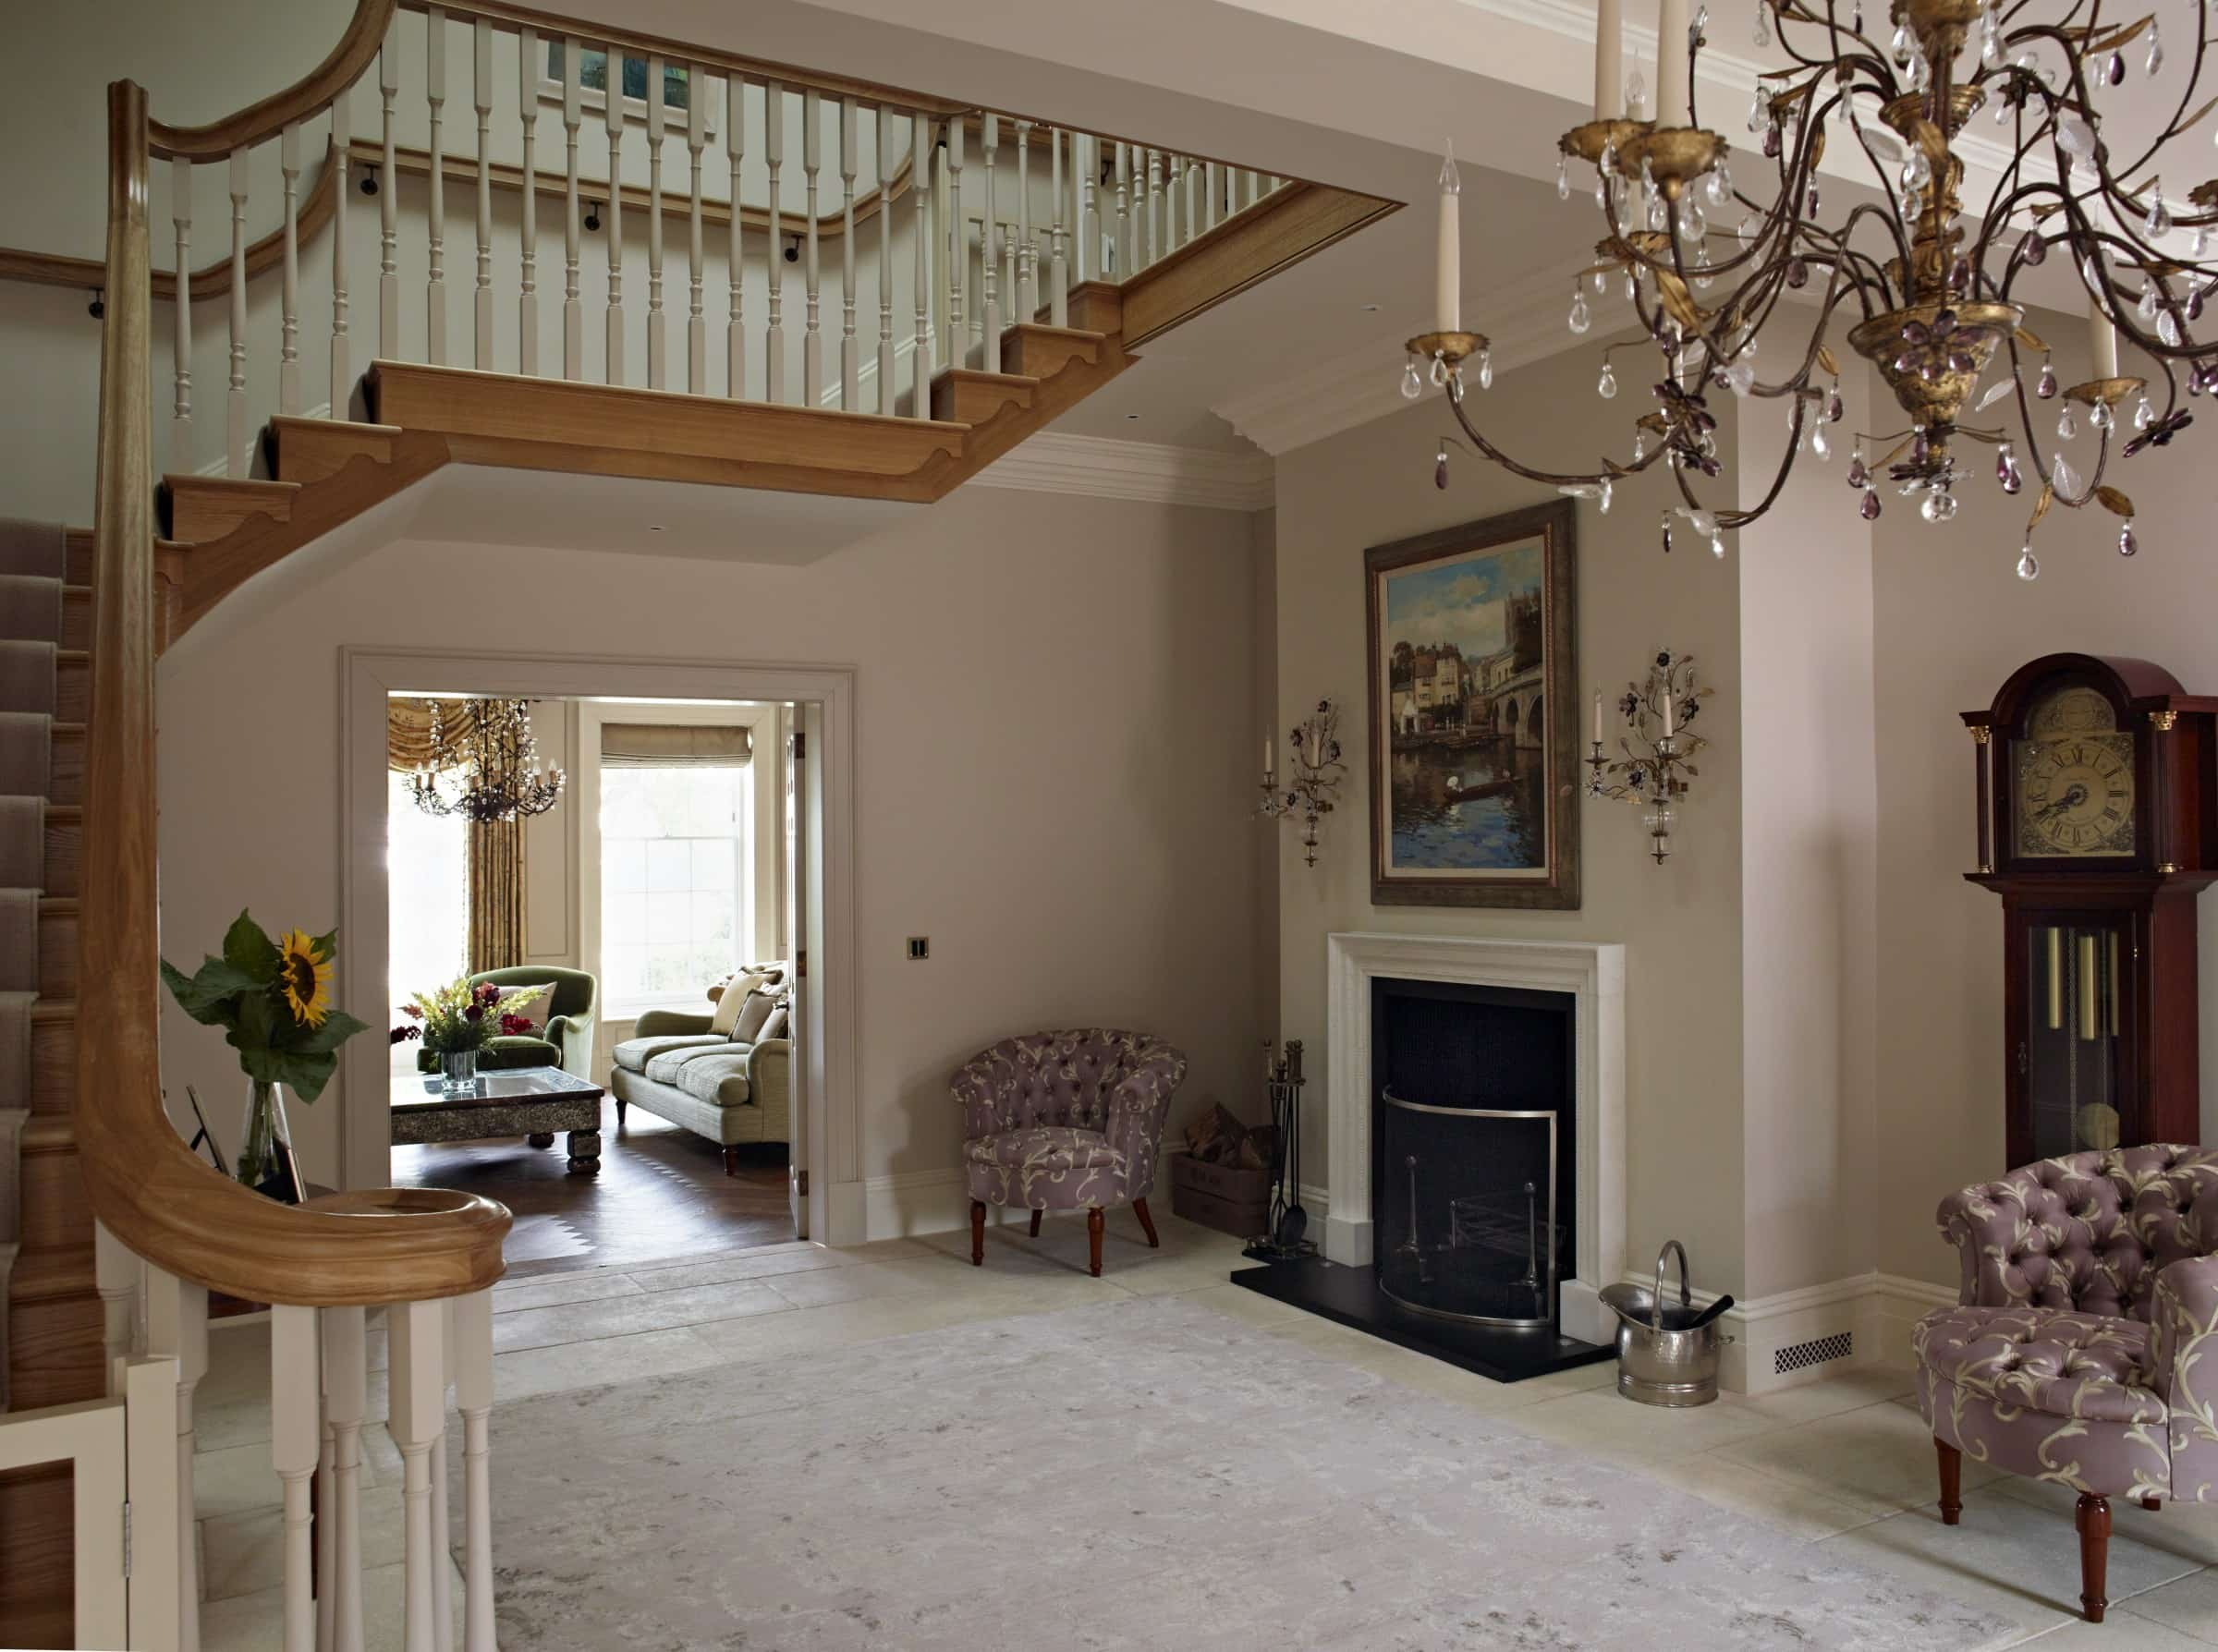 New Regency house in Berkshire